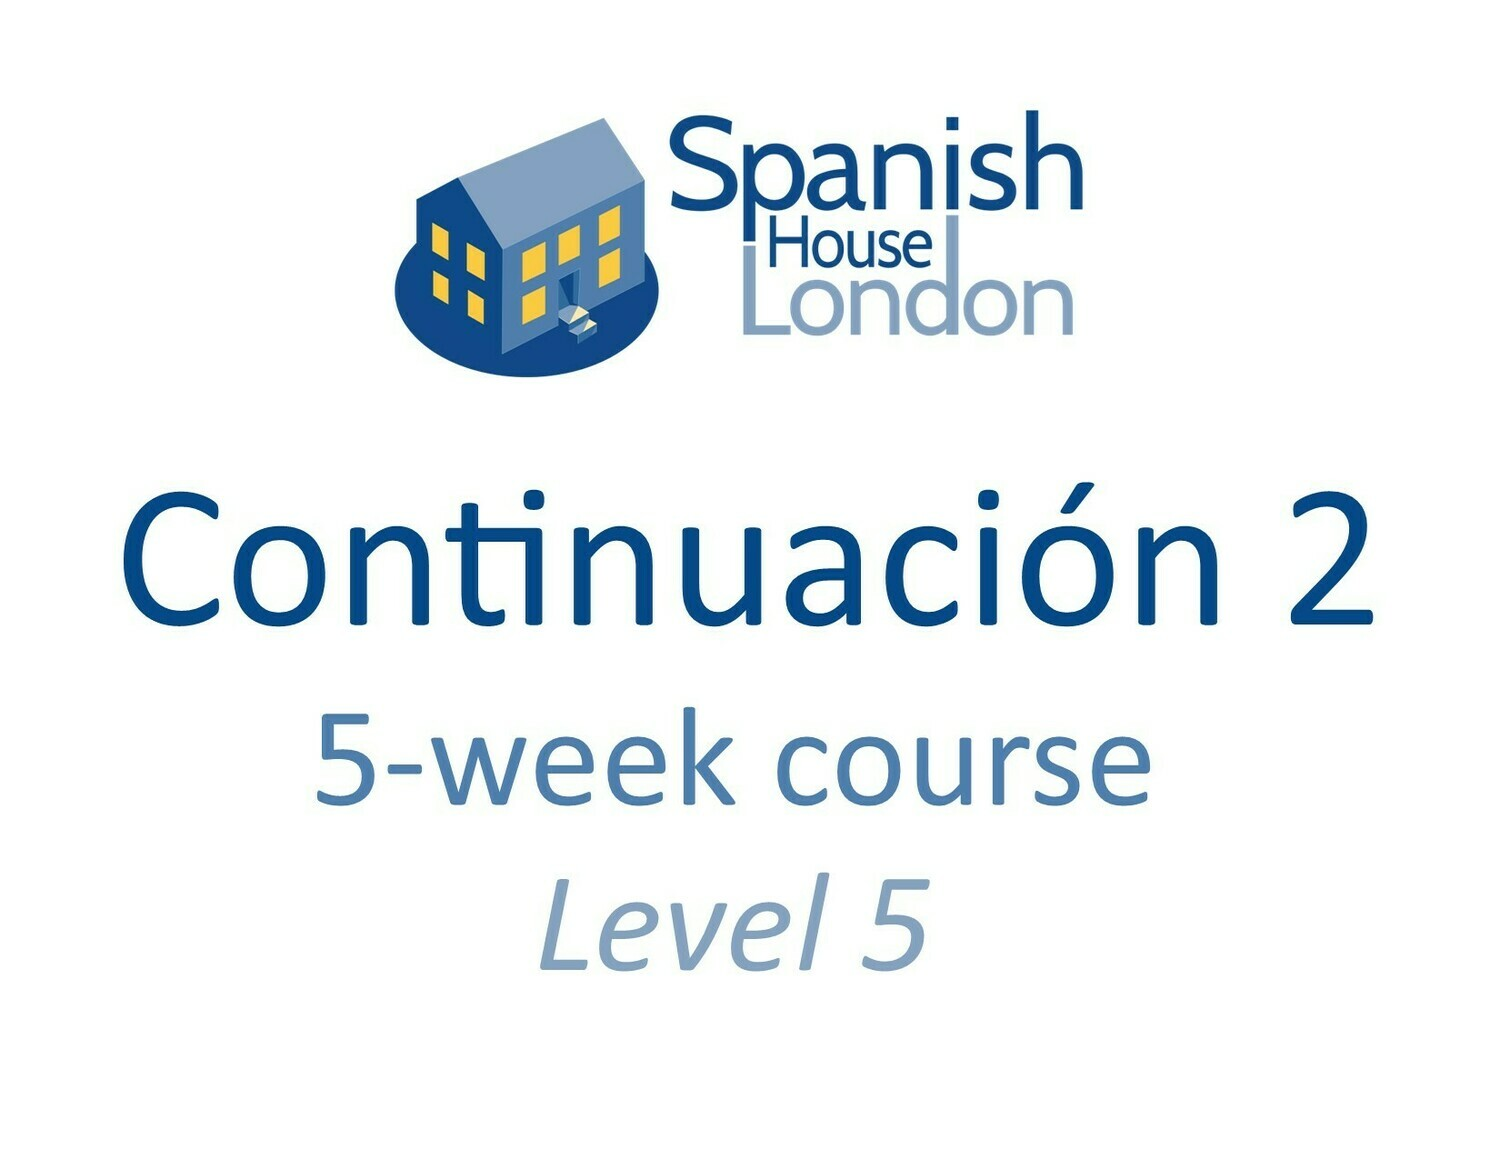 Continuacion 2 Five-Week Intensive Course starting on 23rd June at 6pm